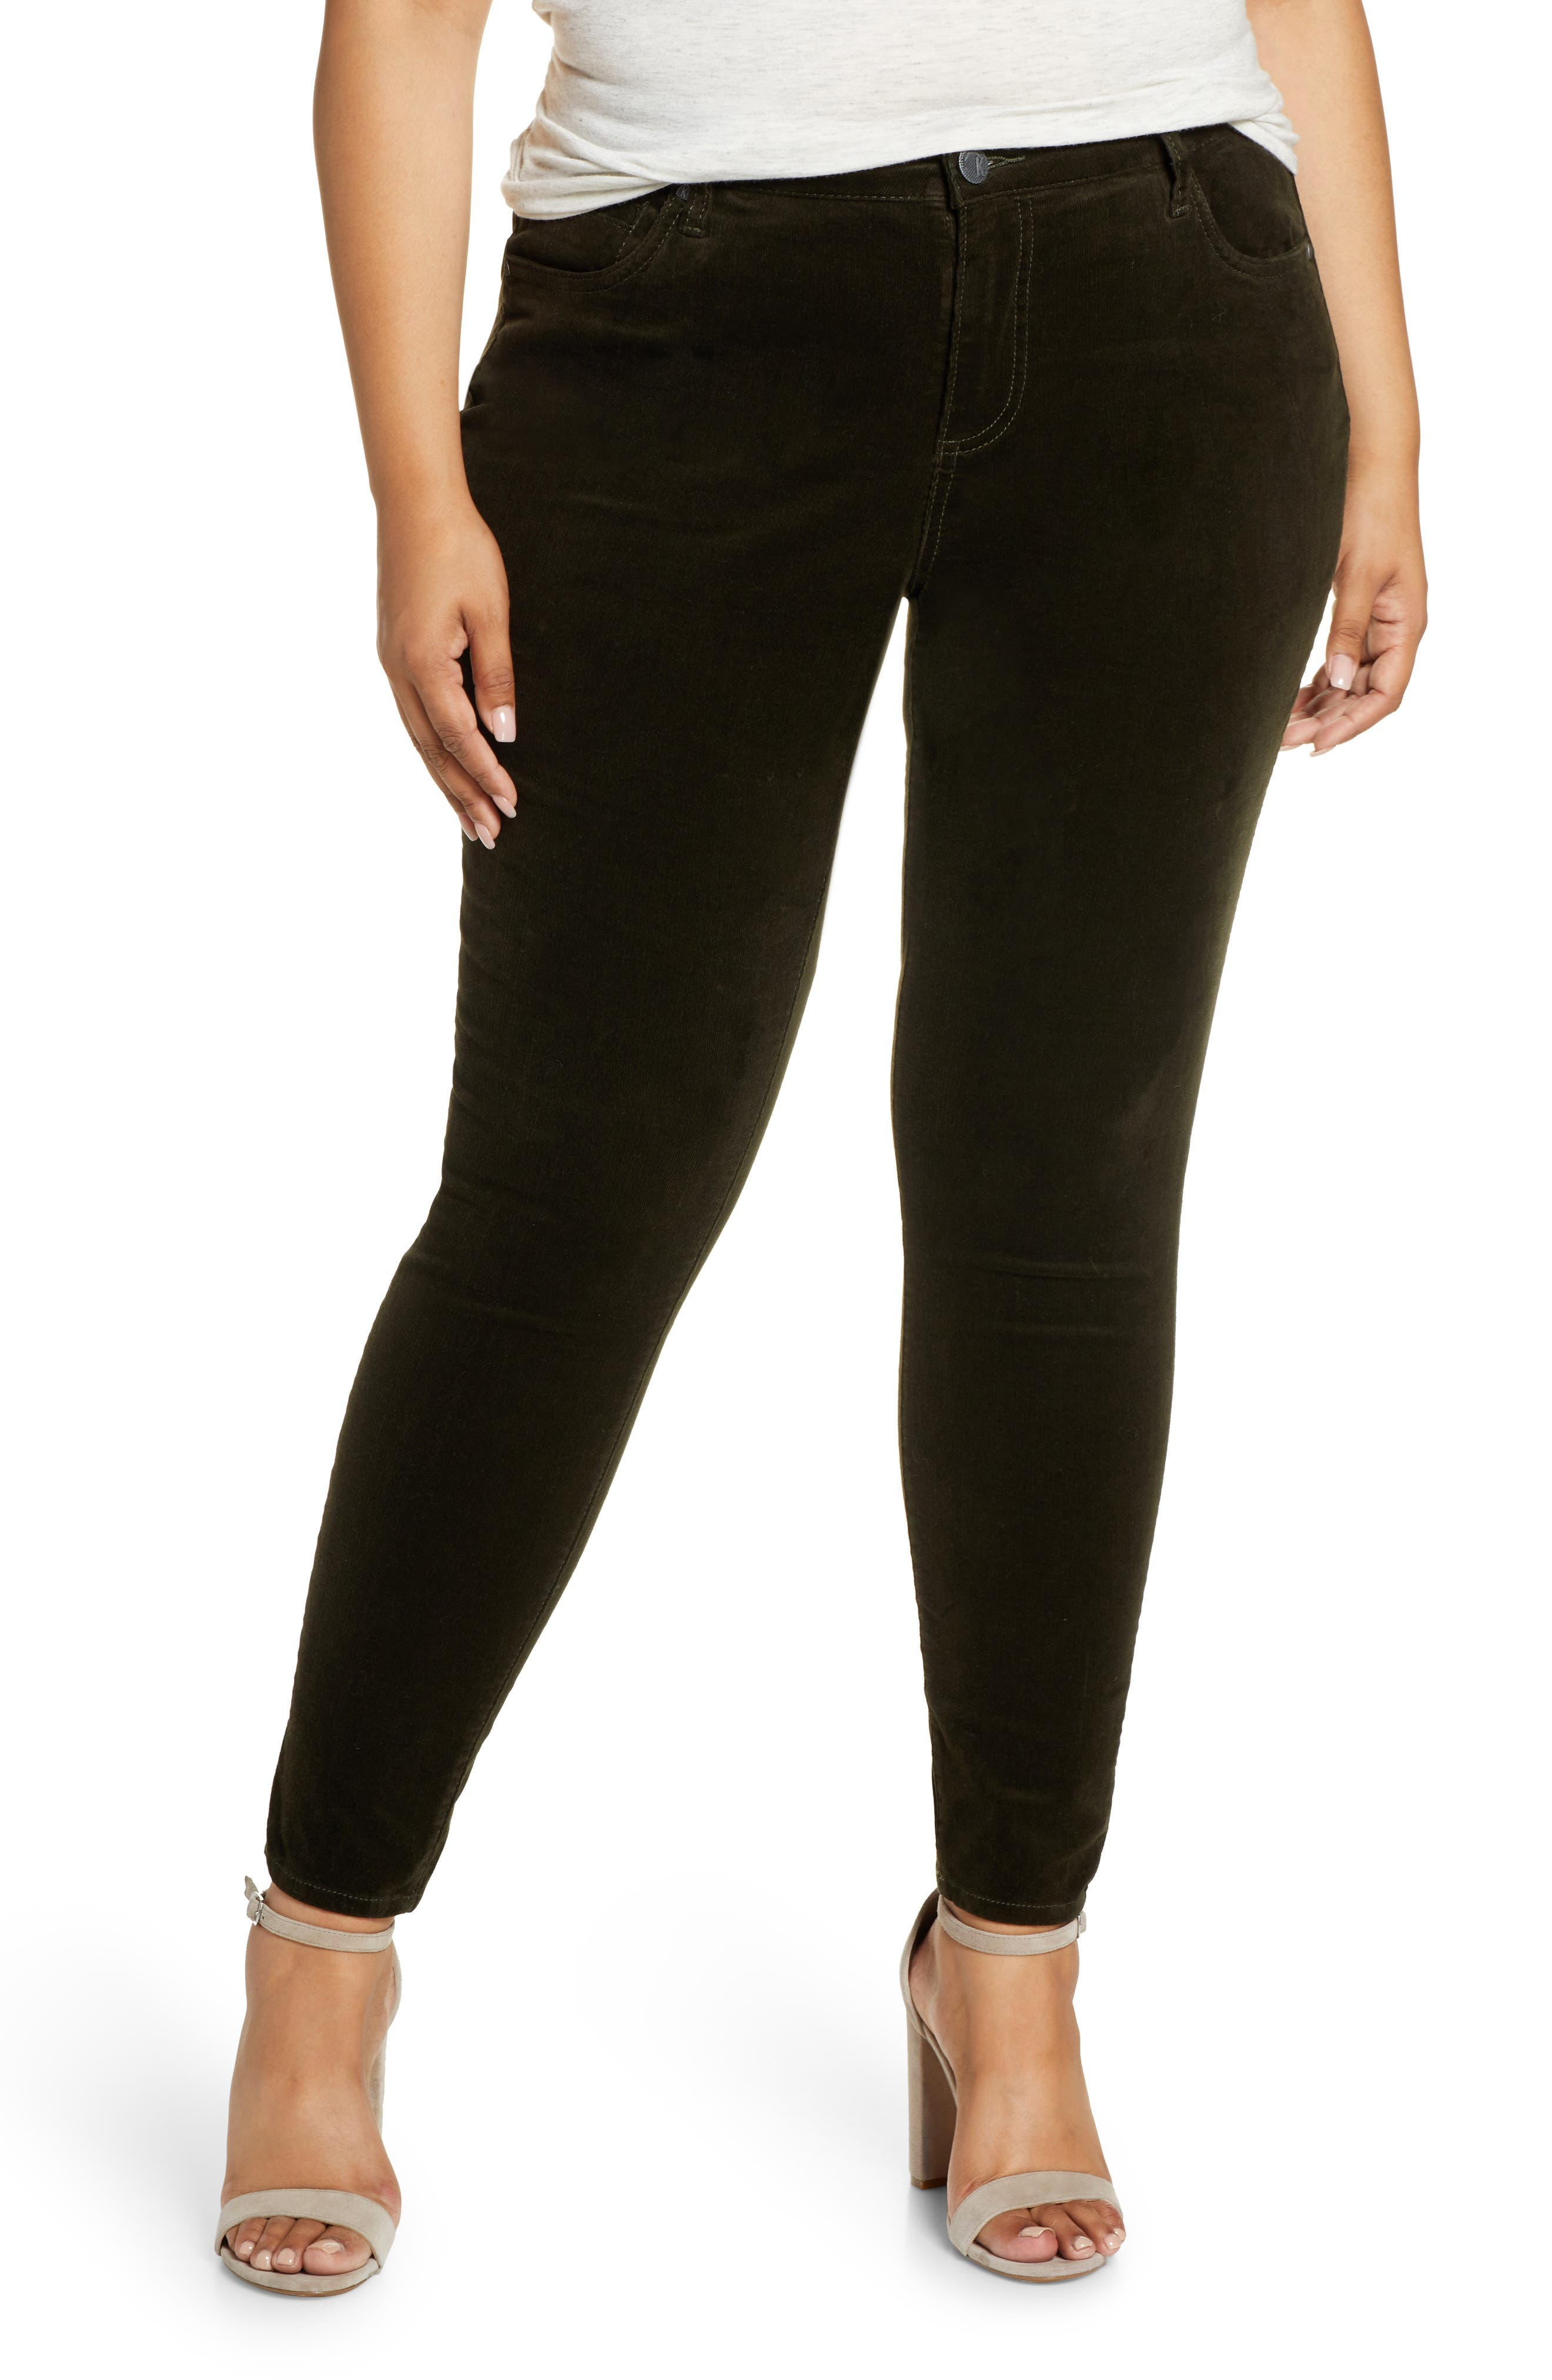 Image of KUT from the Kloth Diana Cord Skinny Jeans